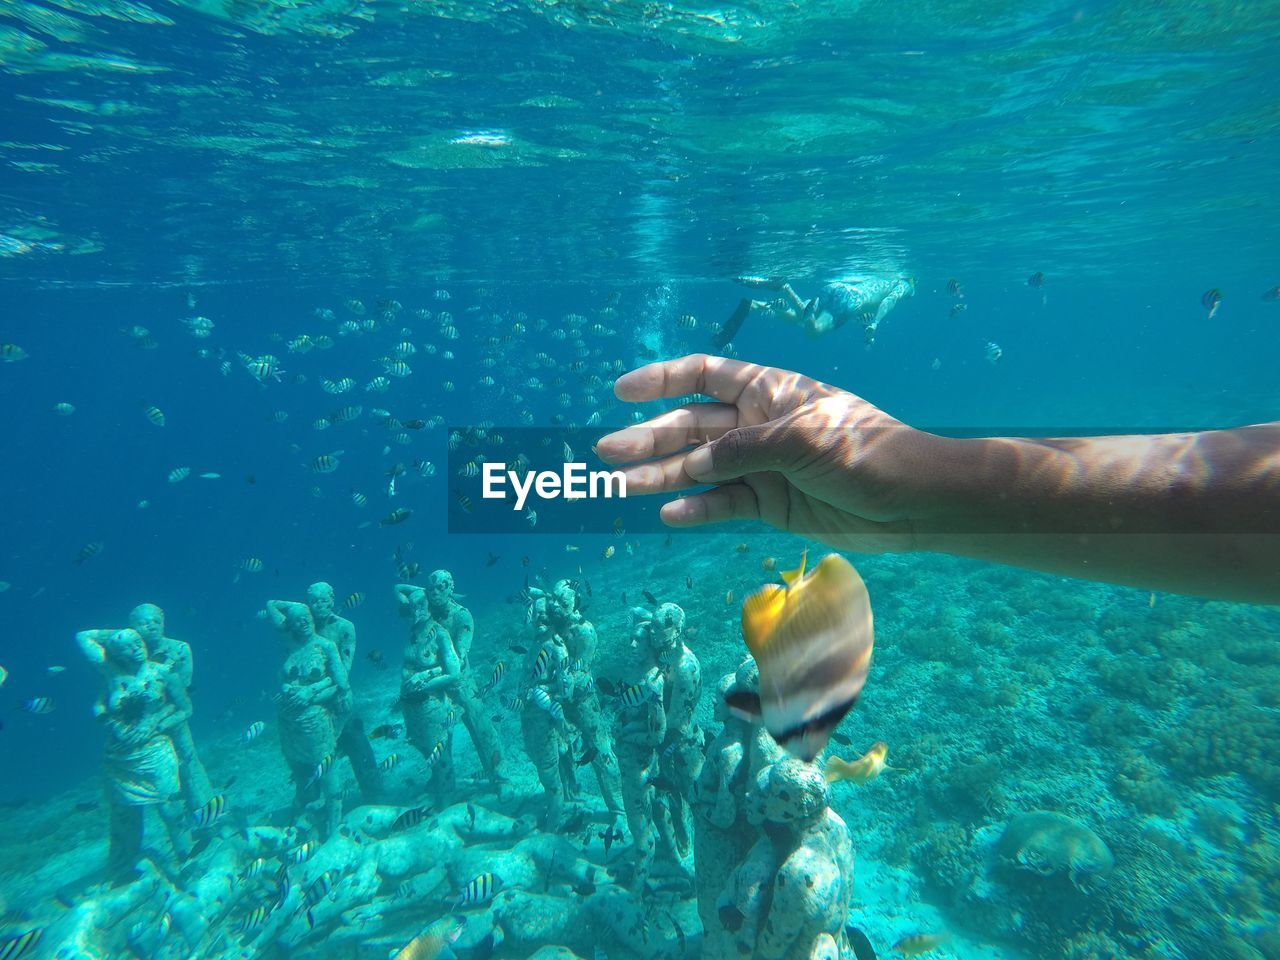 water, sea, underwater, real people, one person, undersea, swimming, human hand, nature, human body part, lifestyles, hand, animal wildlife, blue, animals in the wild, sea life, day, outdoors, marine, turquoise colored, school of fish